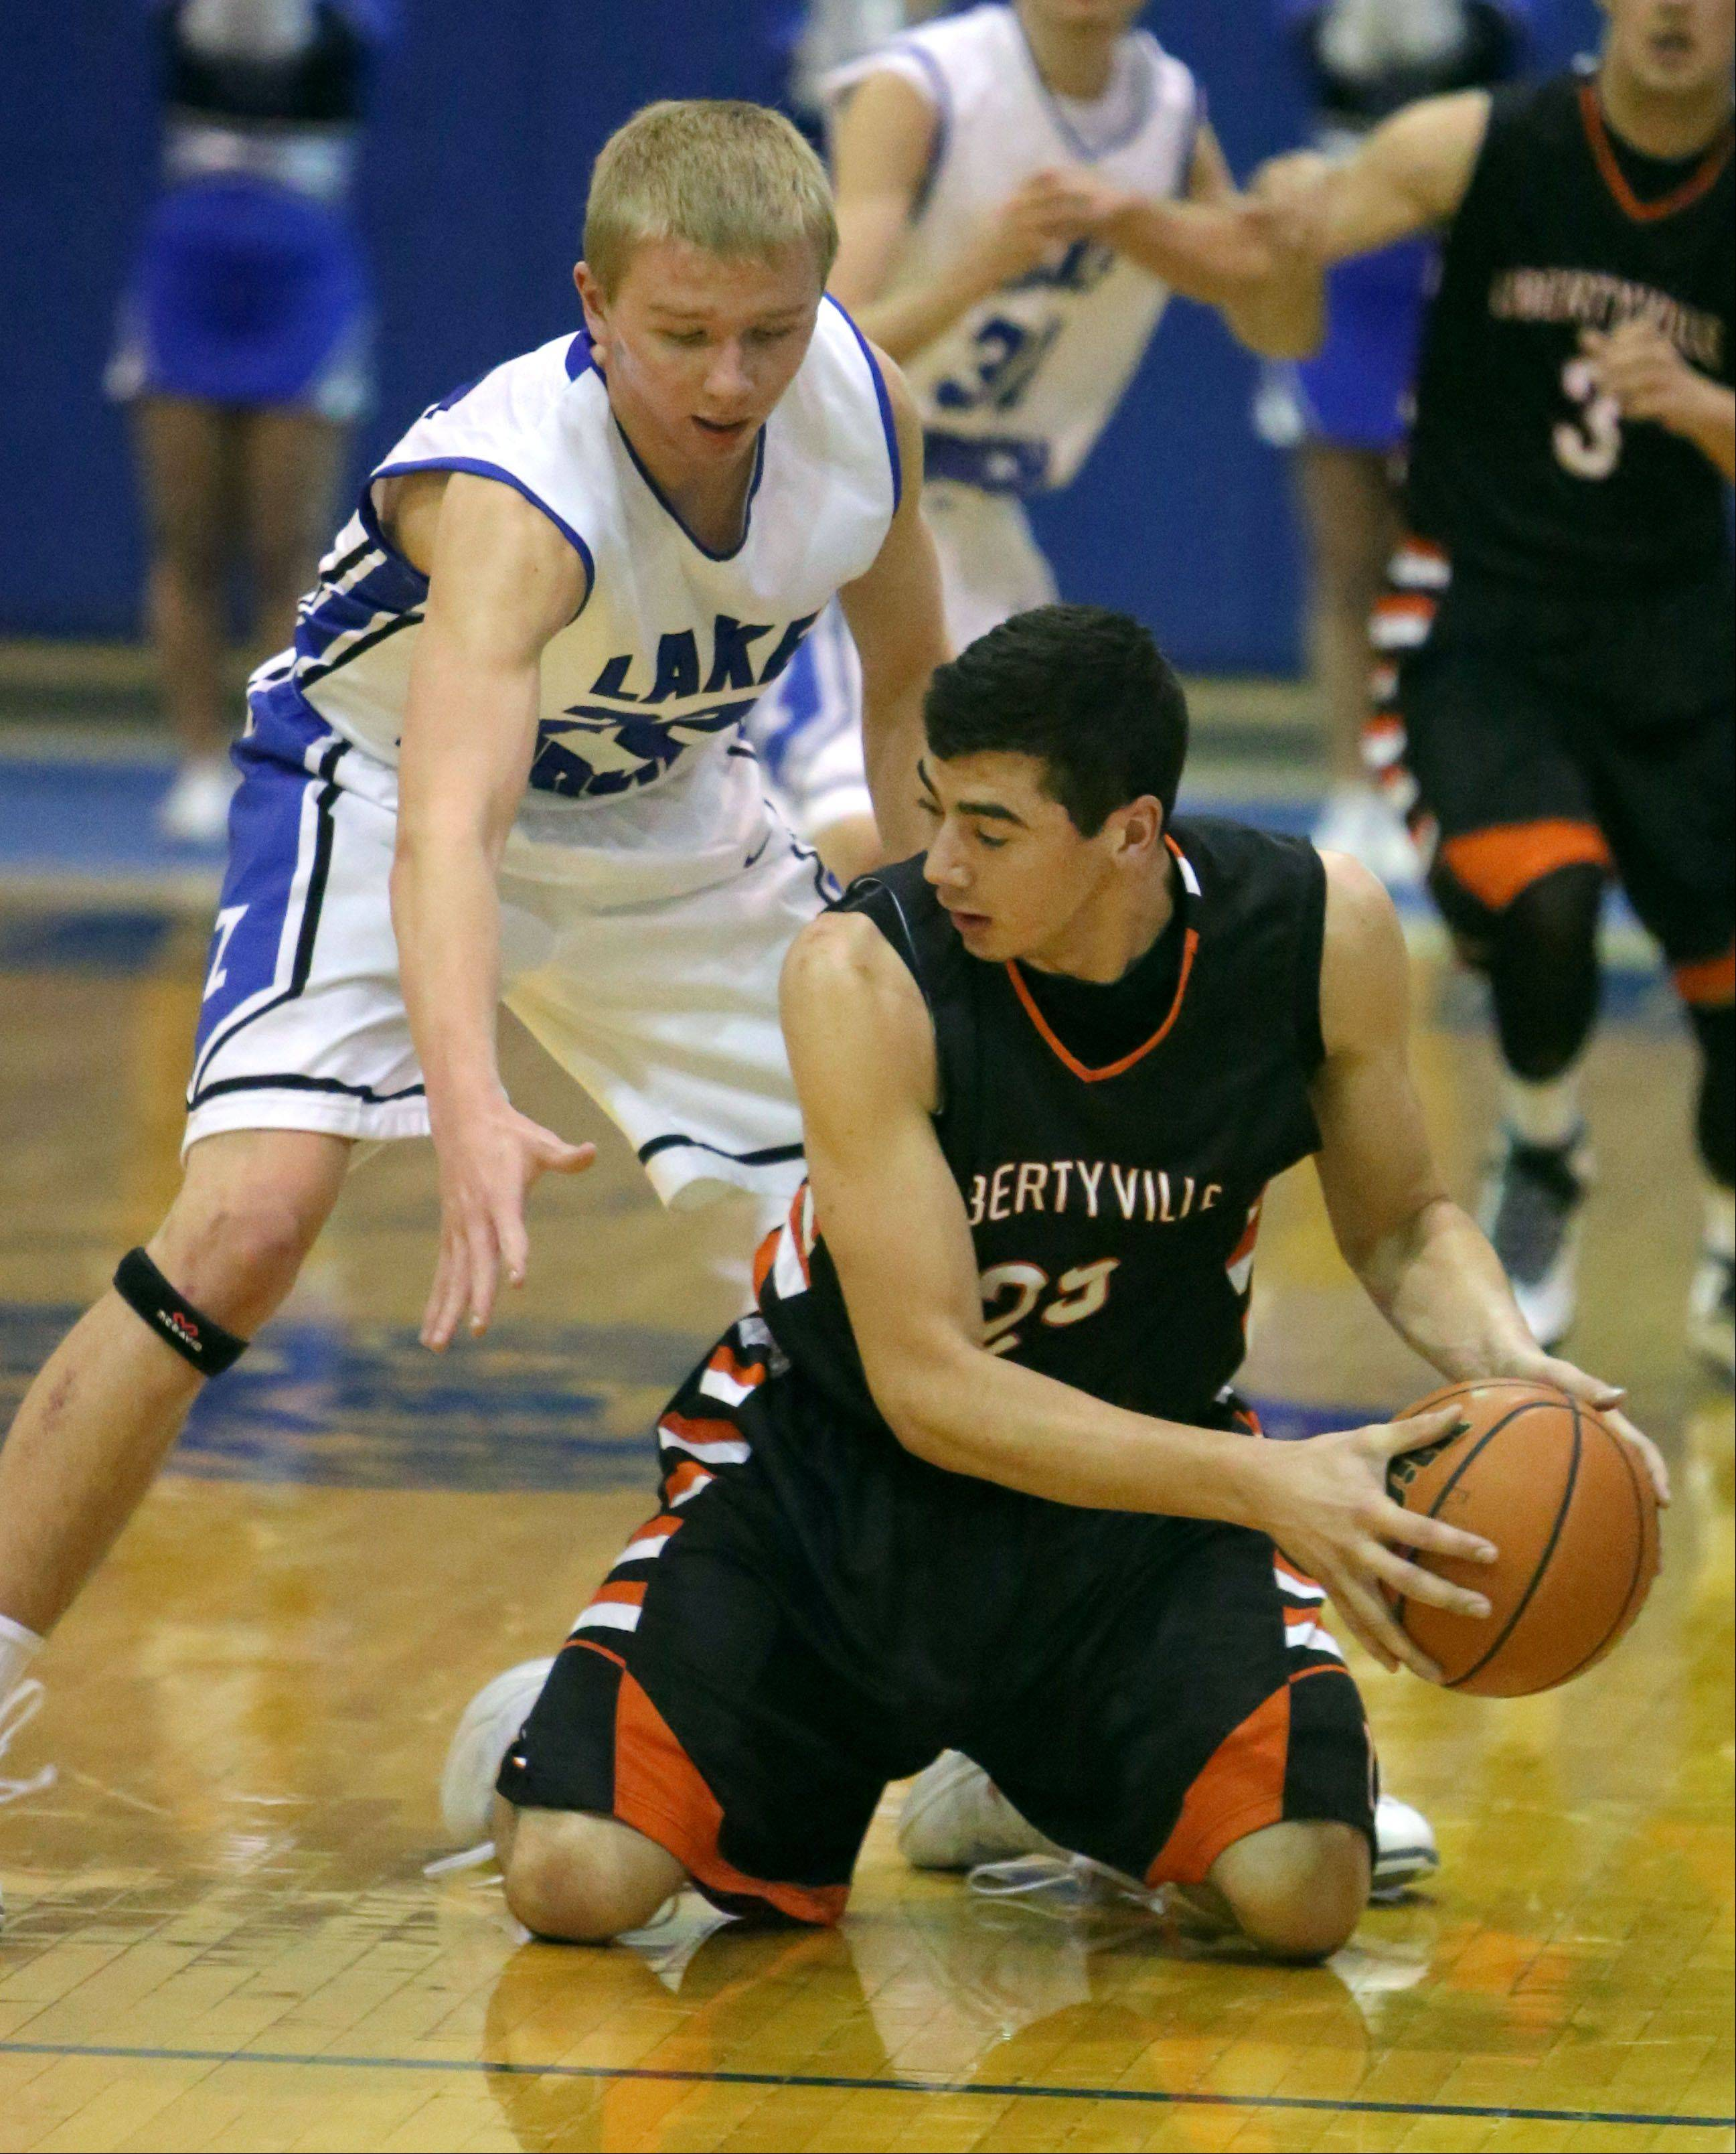 Lake Zurich's Brad Kruse, left, and Libertyville's Johnny Vernasco chase a loose ball during NSC Lake play at Lake Zurich.